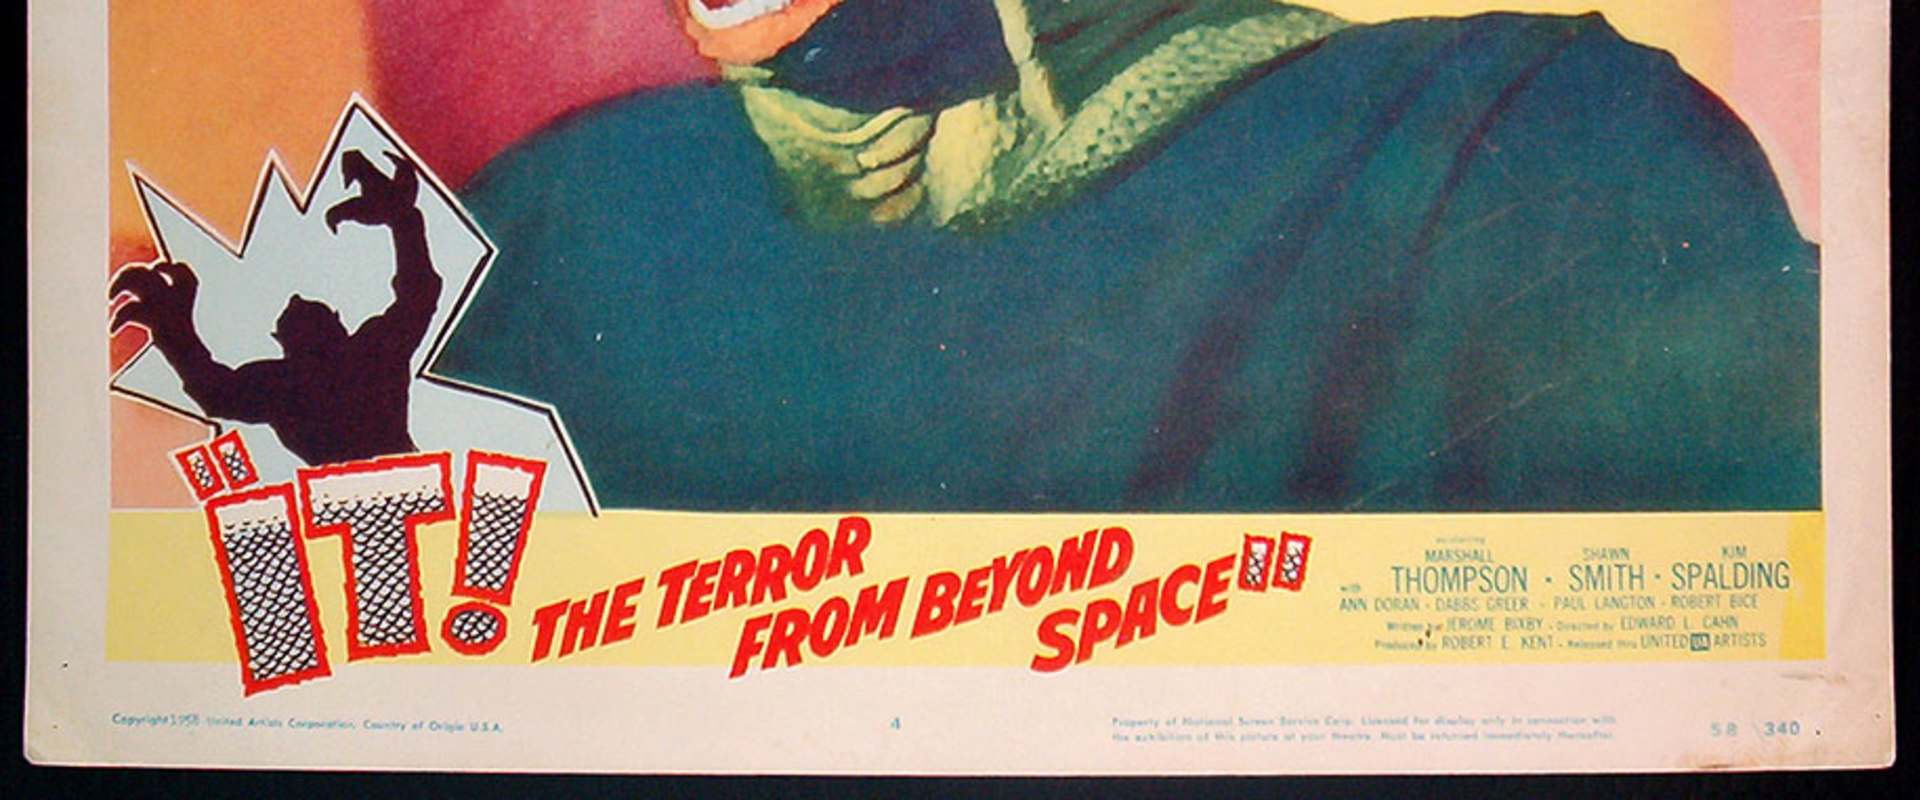 It! The Terror from Beyond Space background 1